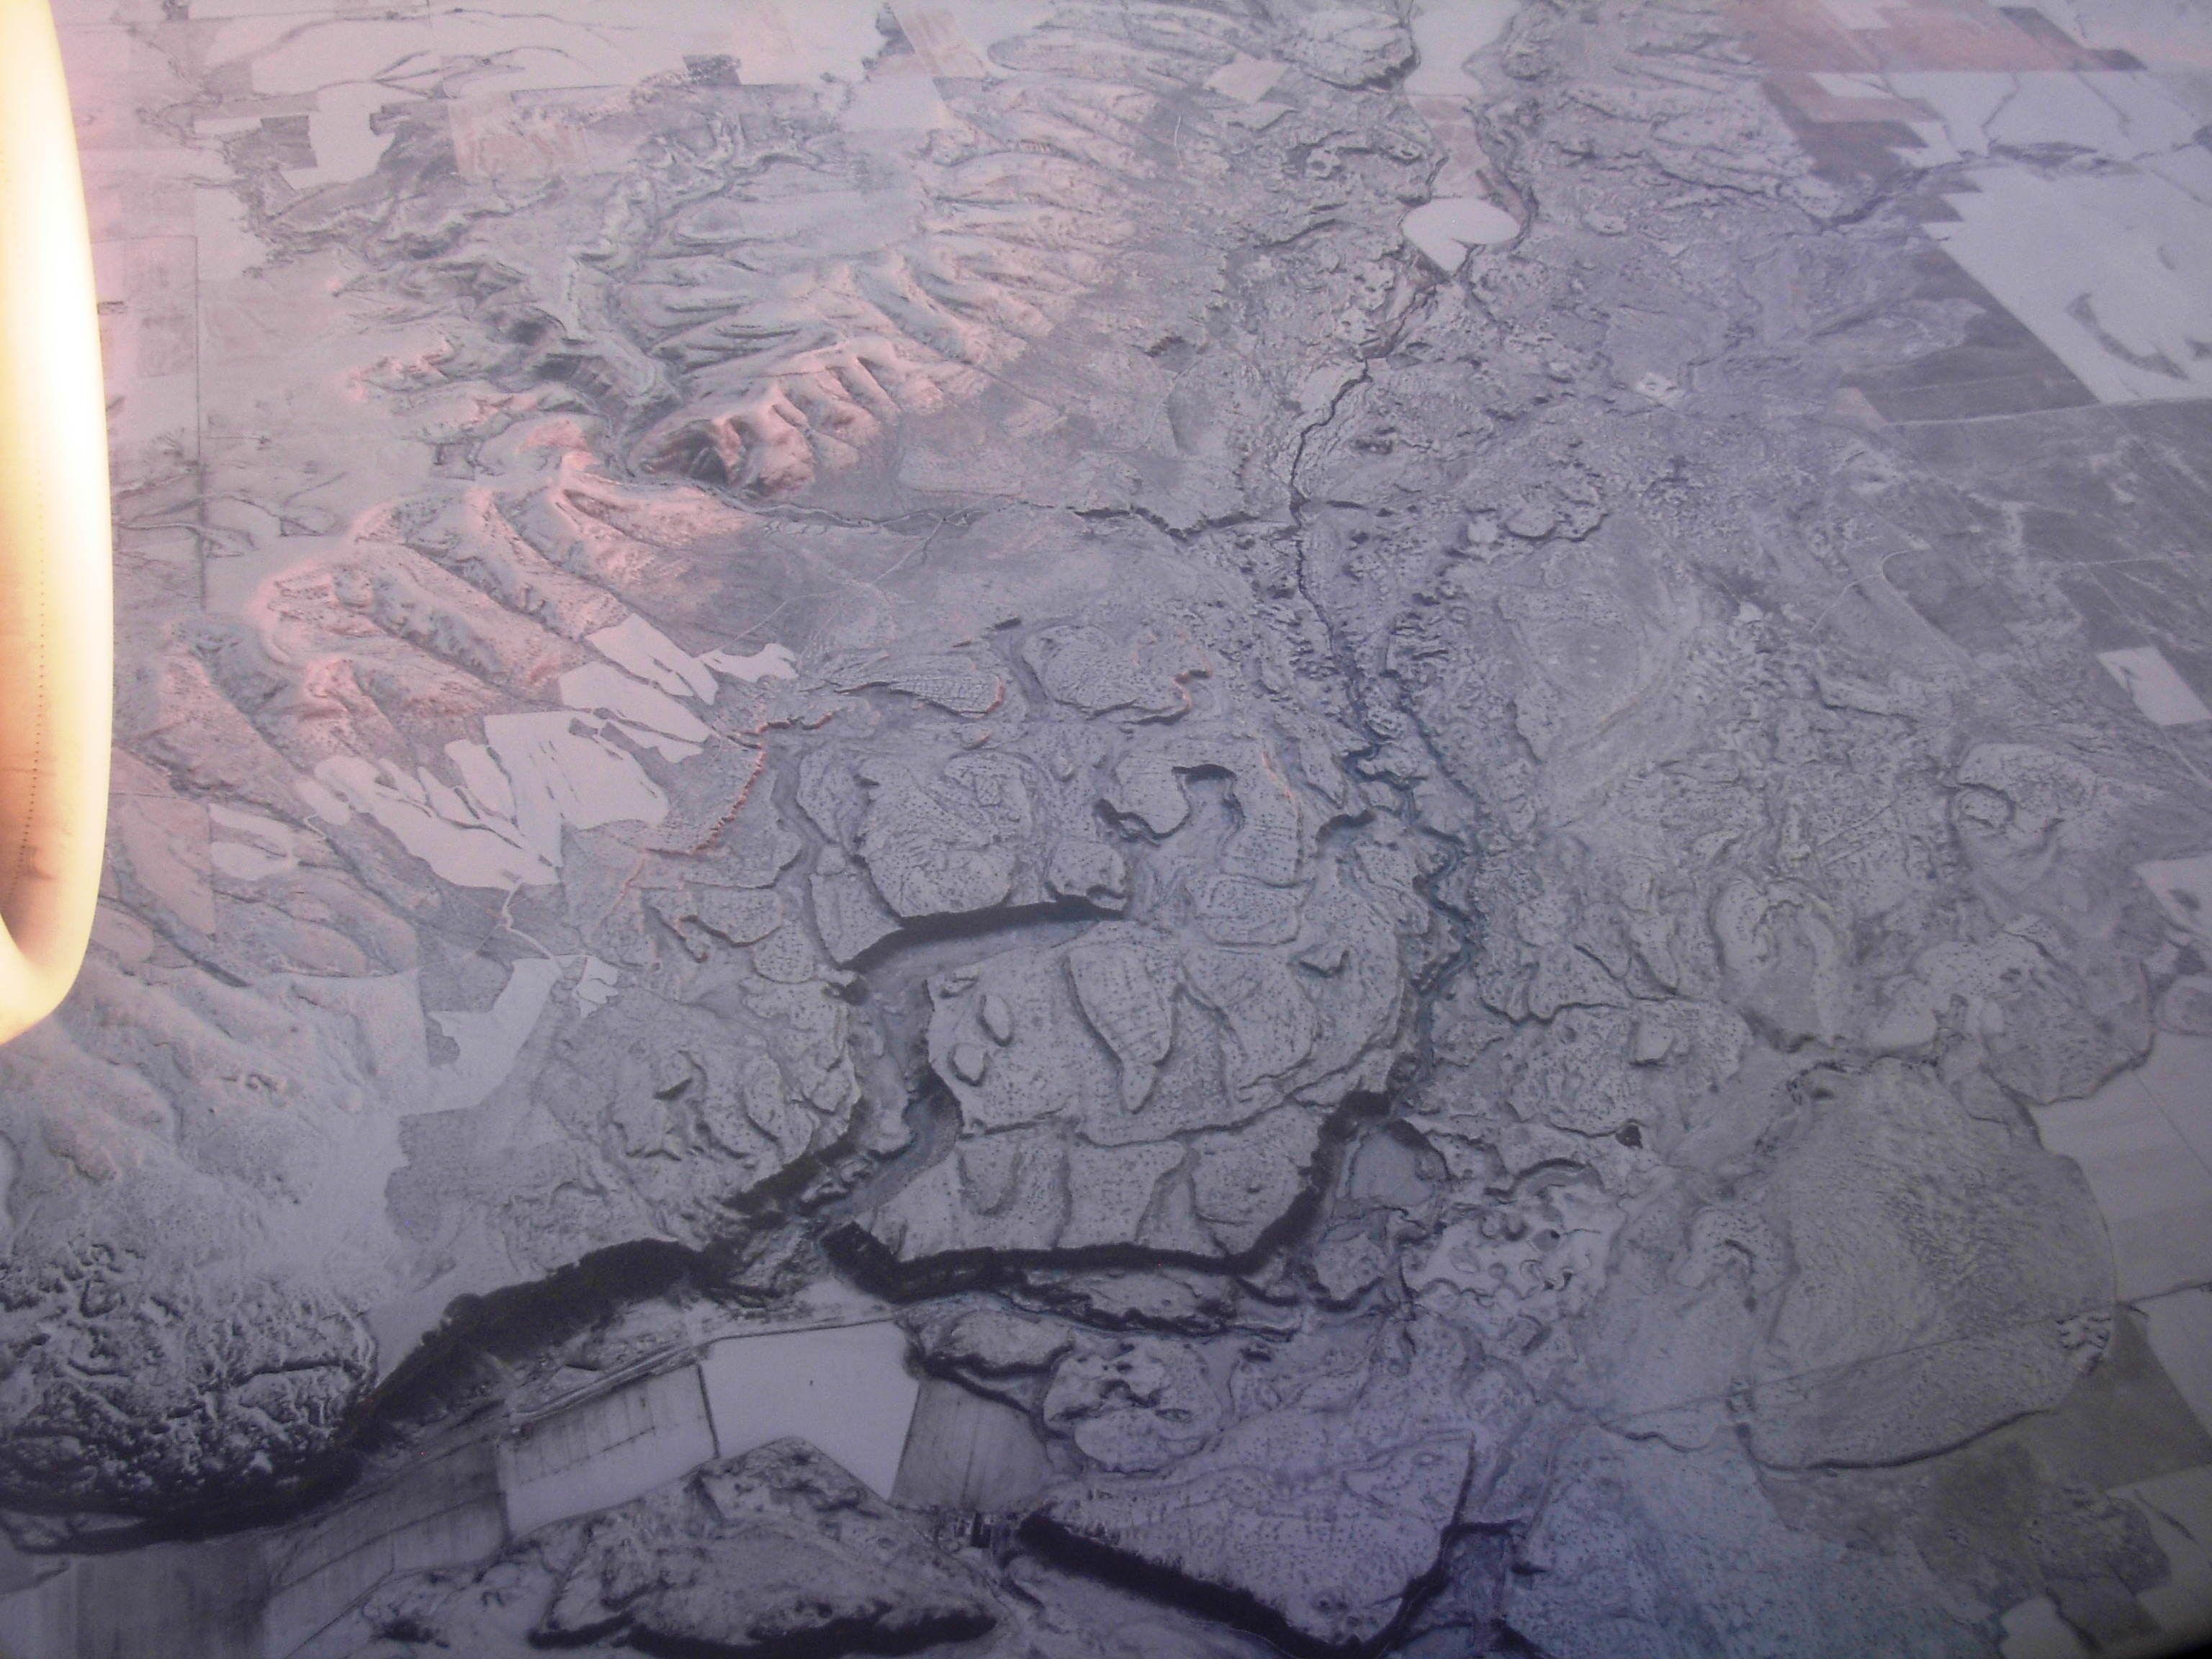 Aerial view of the area called Moses Coulee in part of the Channelled Scablands, showing collosal former river gorges.